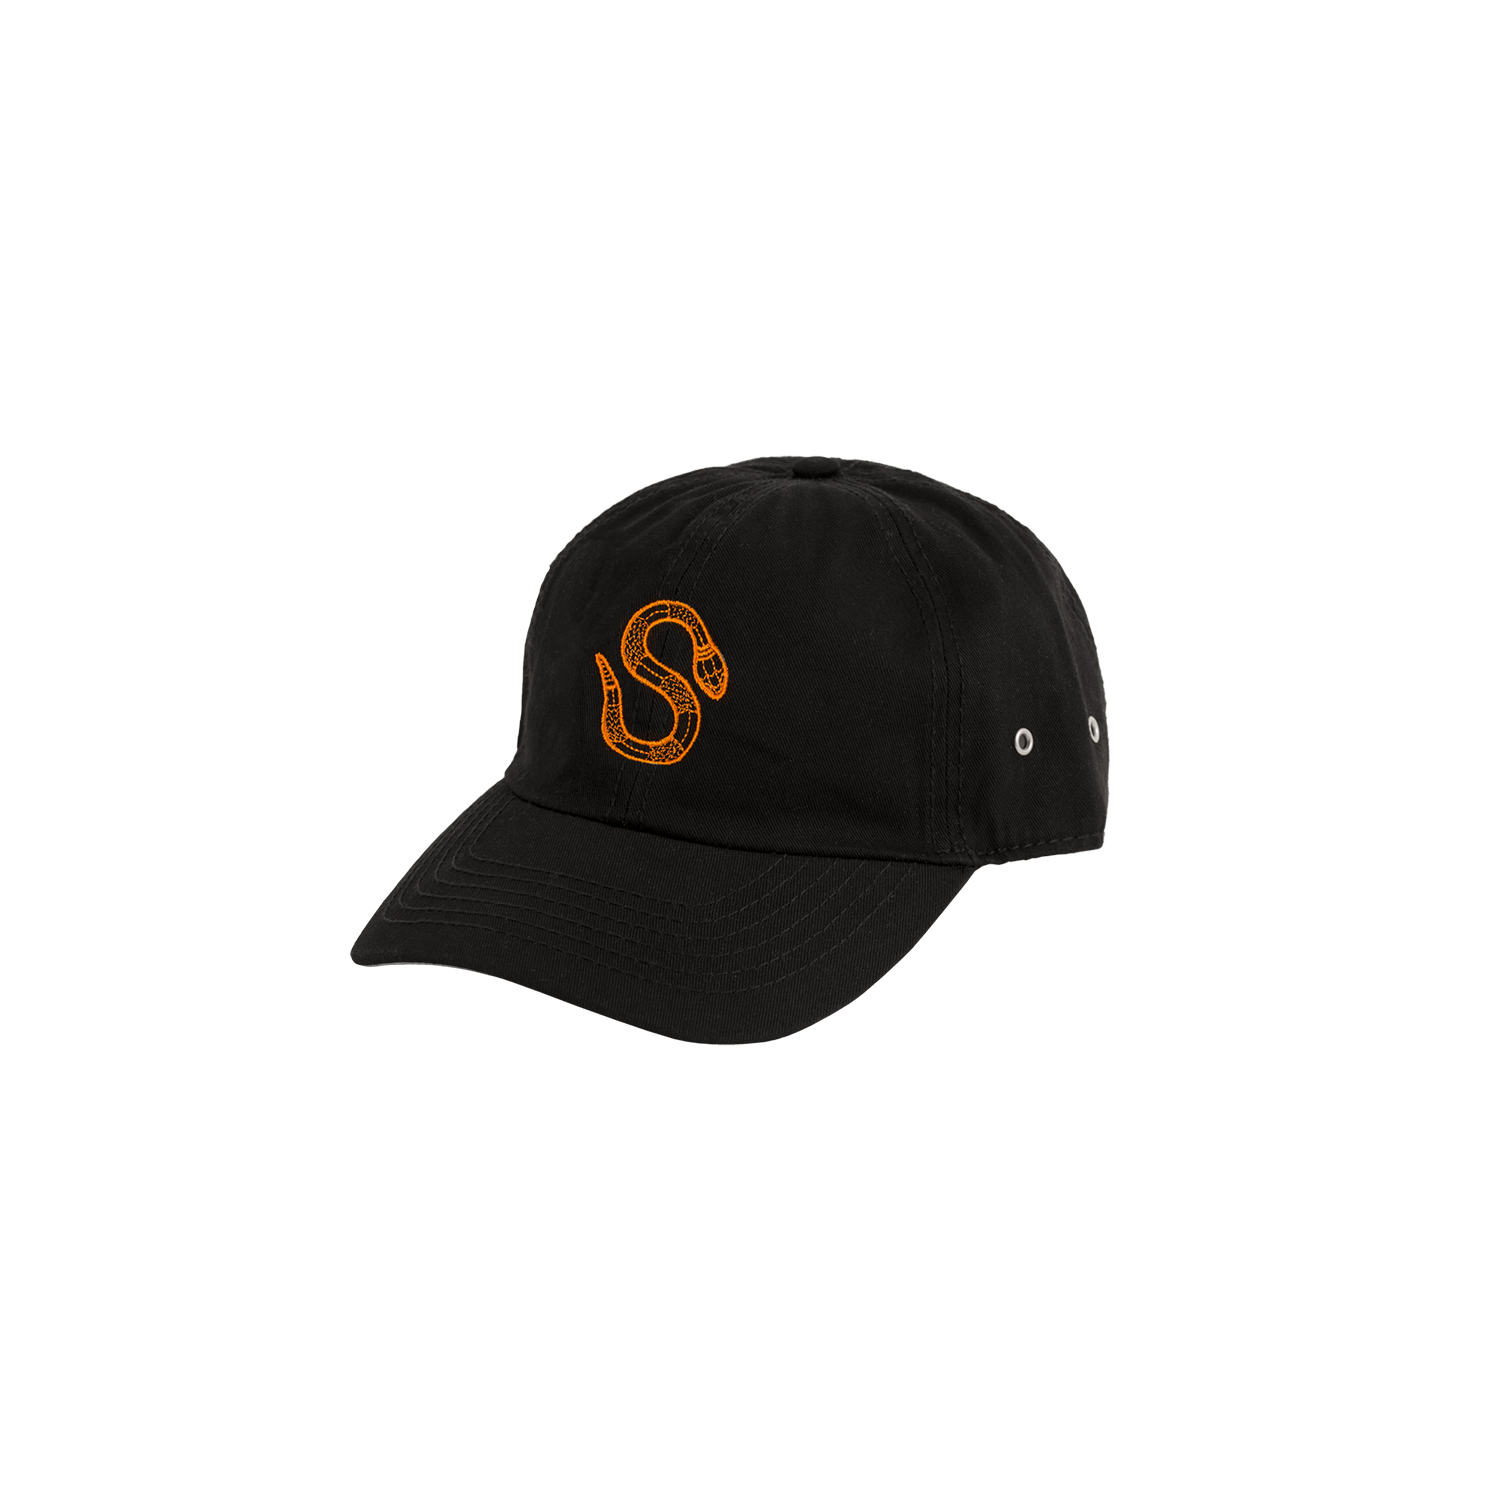 La Vida de Sita Dad cap Black orange embroidered